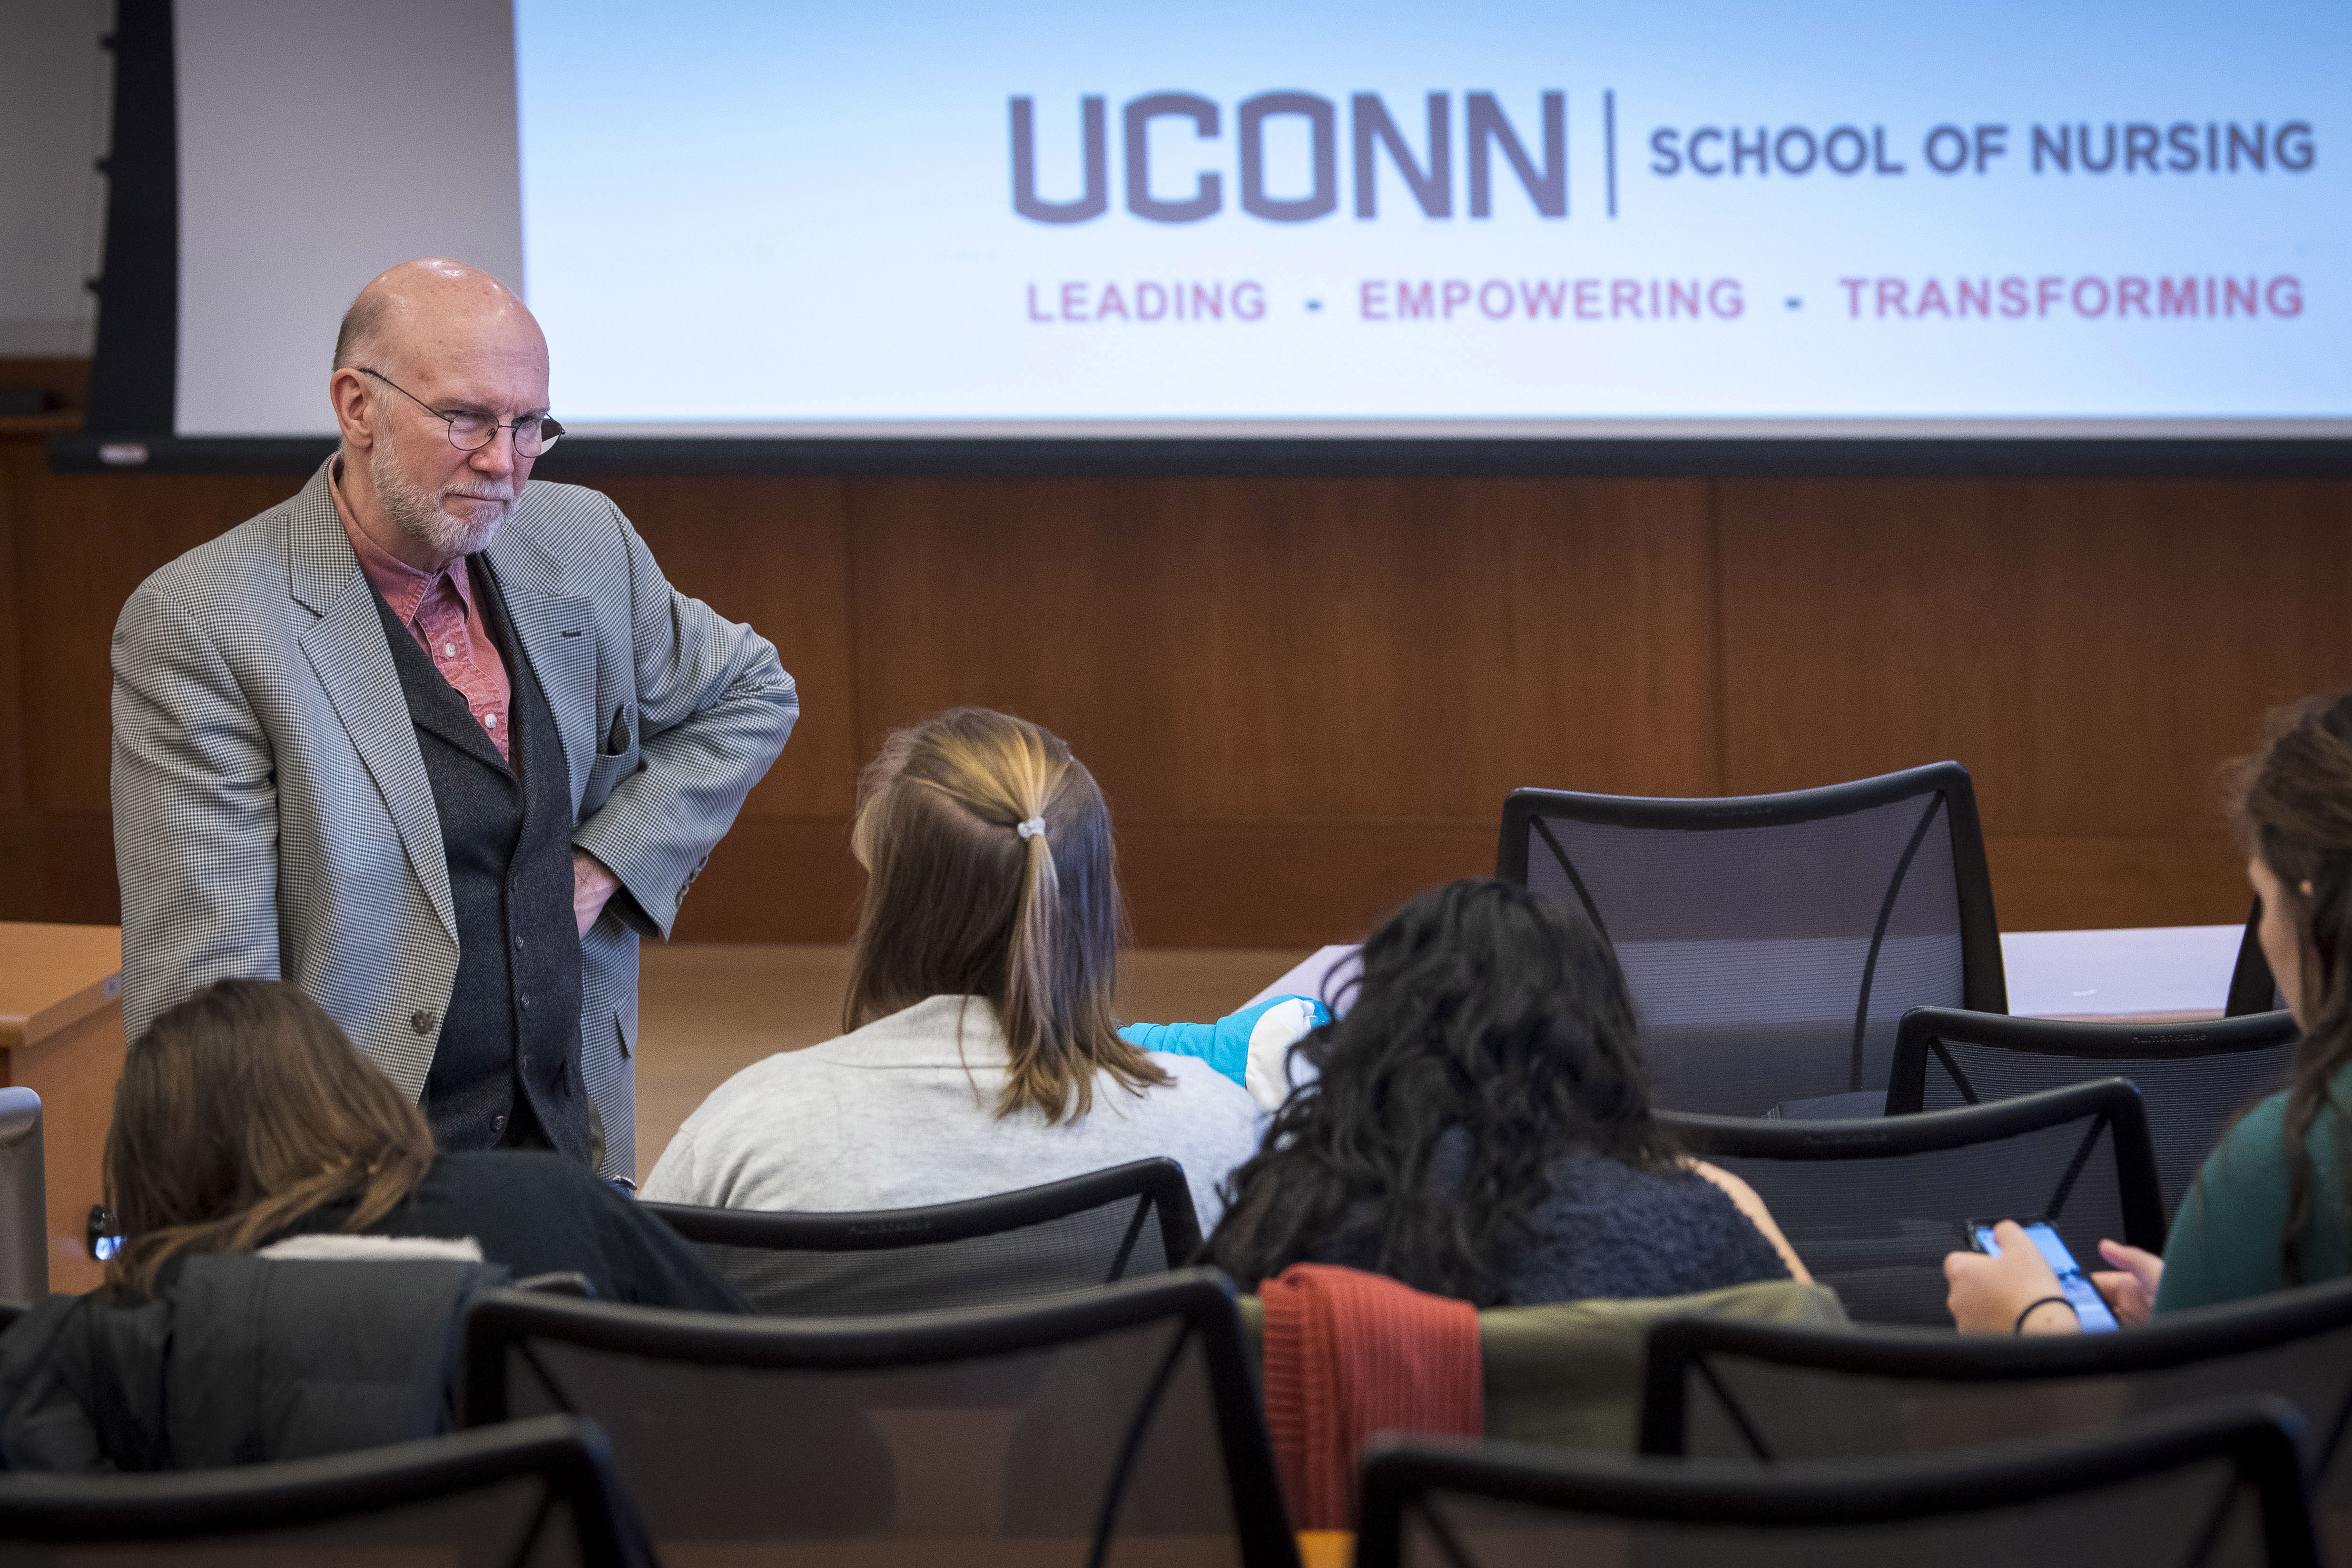 Professor Tom Long gives a lecture in the Widmer Wing of the School of Nursing. (Sean Flynn/UConn Photo)